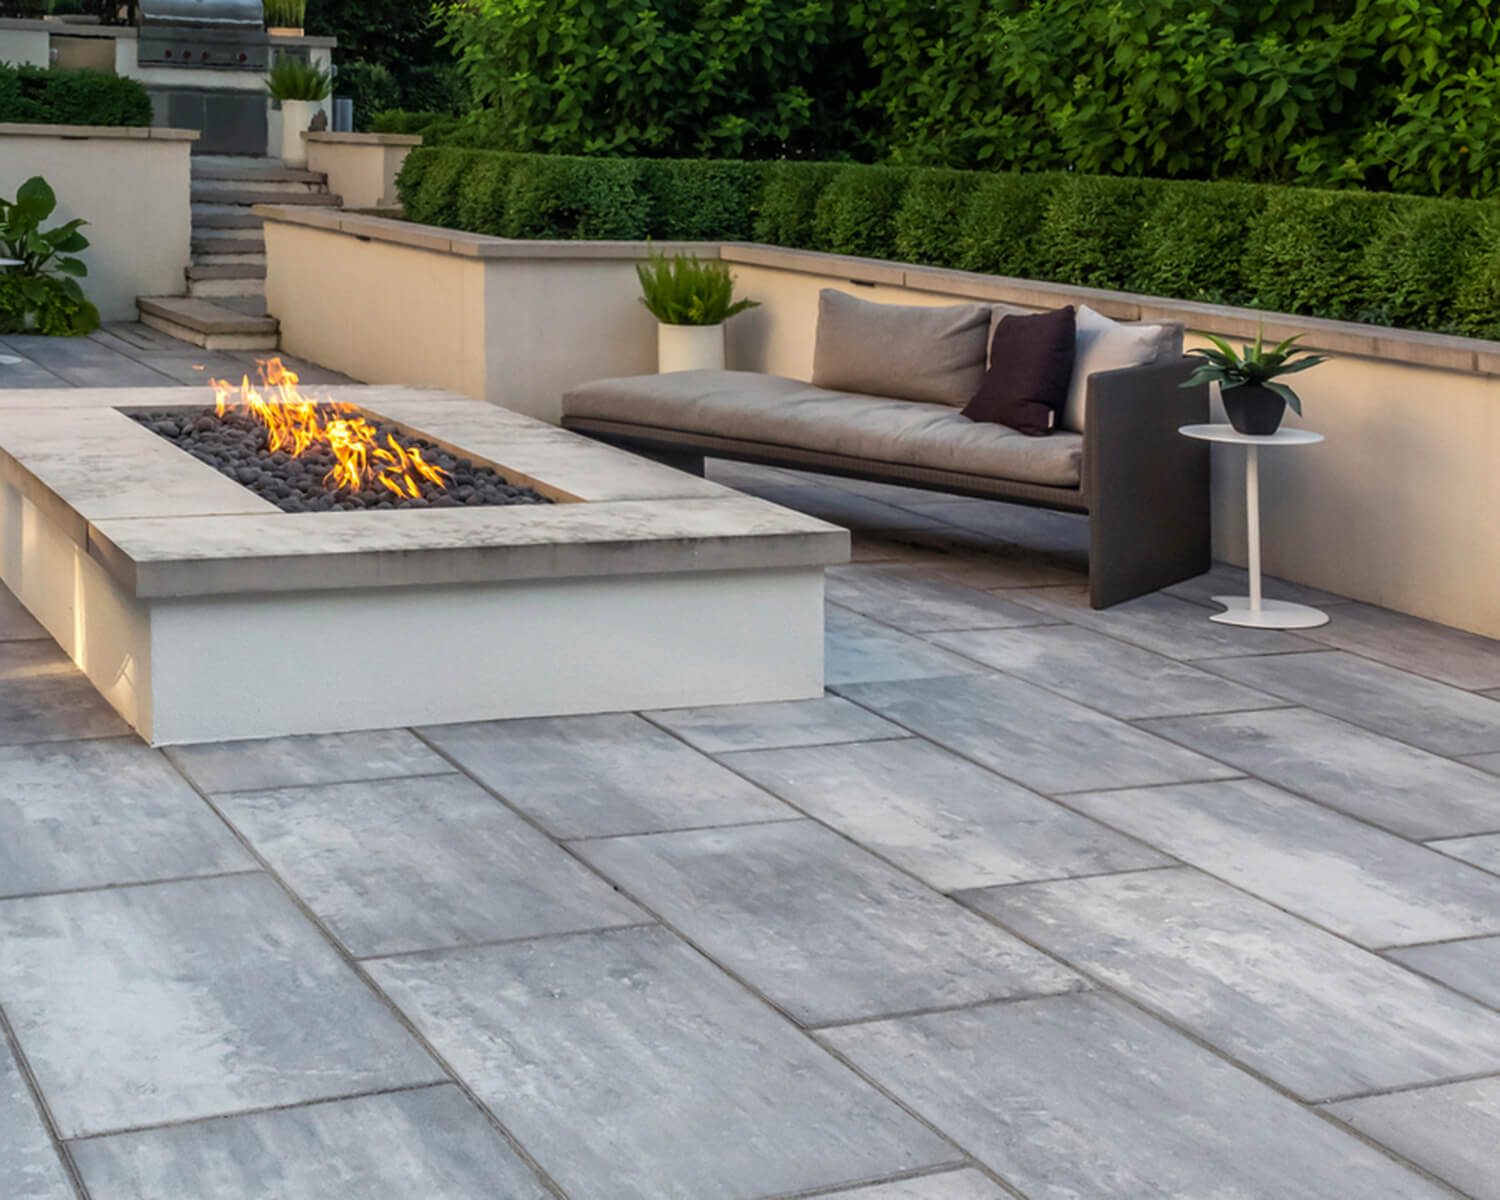 Grey Unilock slabs on a deck, with an outdoor fireplace and sofa